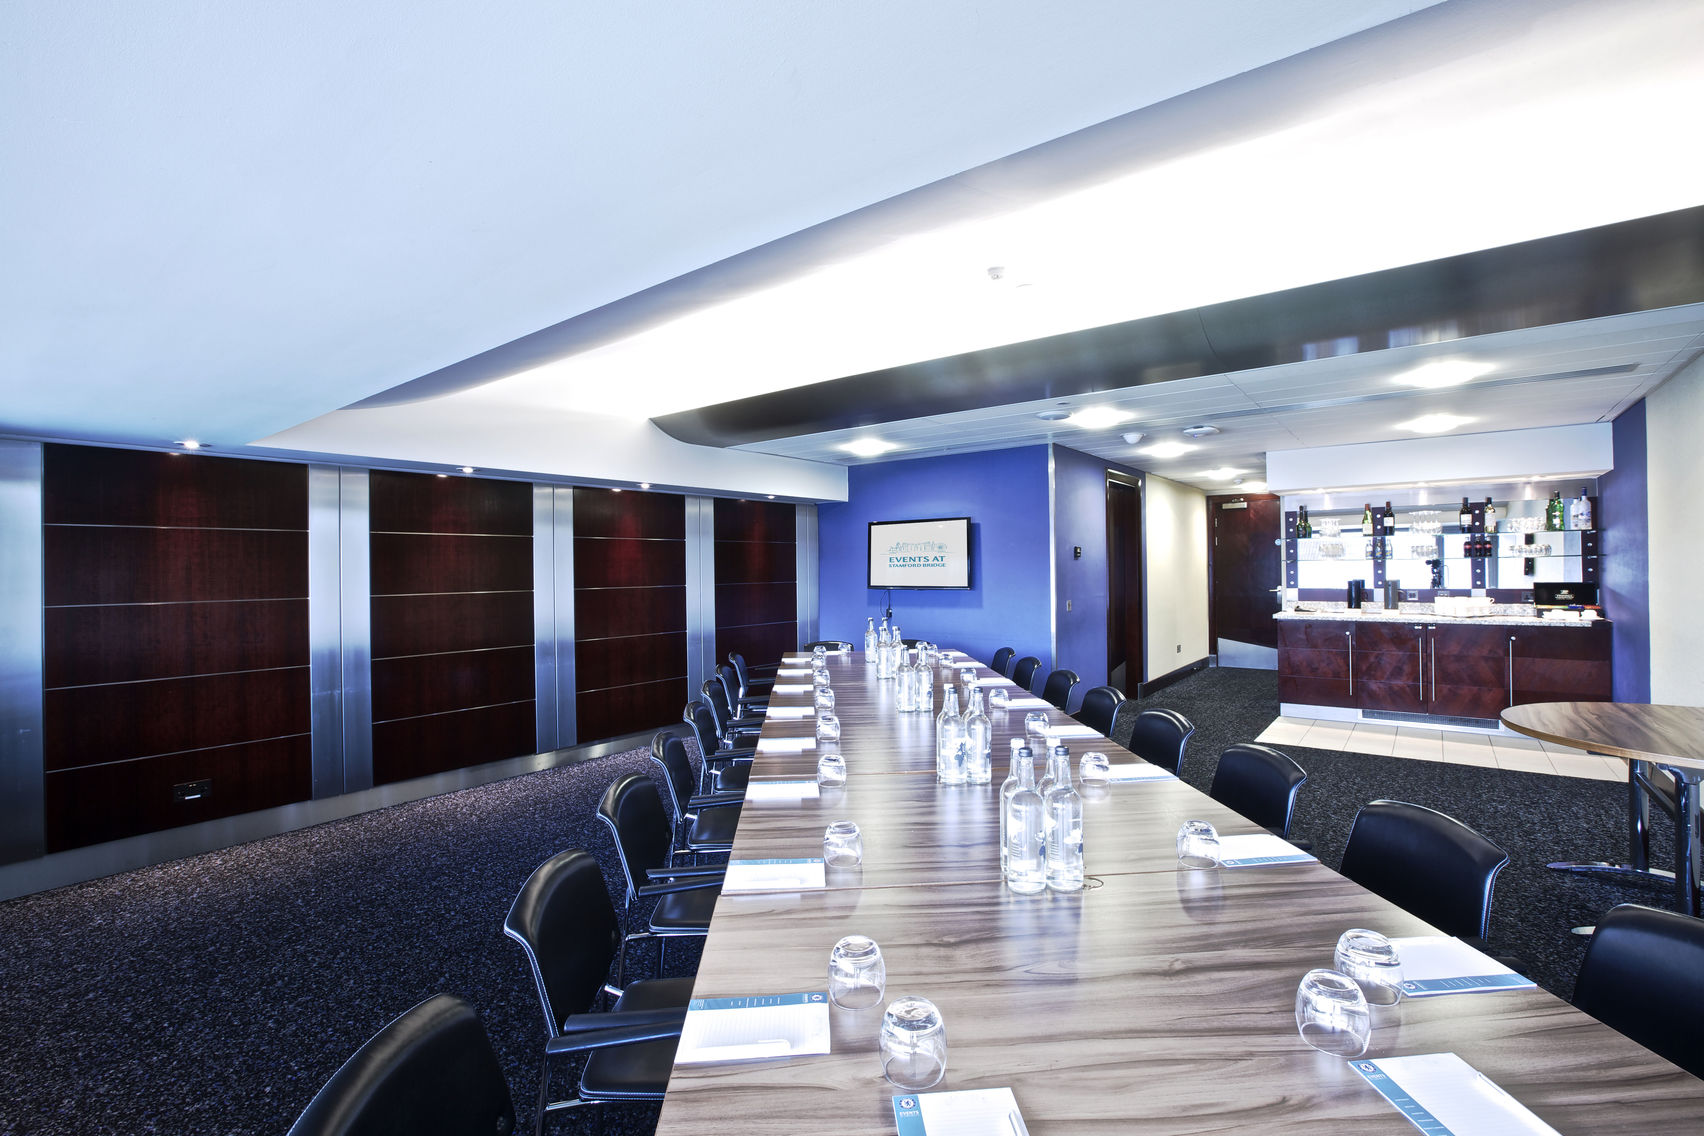 Millennium Suites x13, Chelsea Football Club